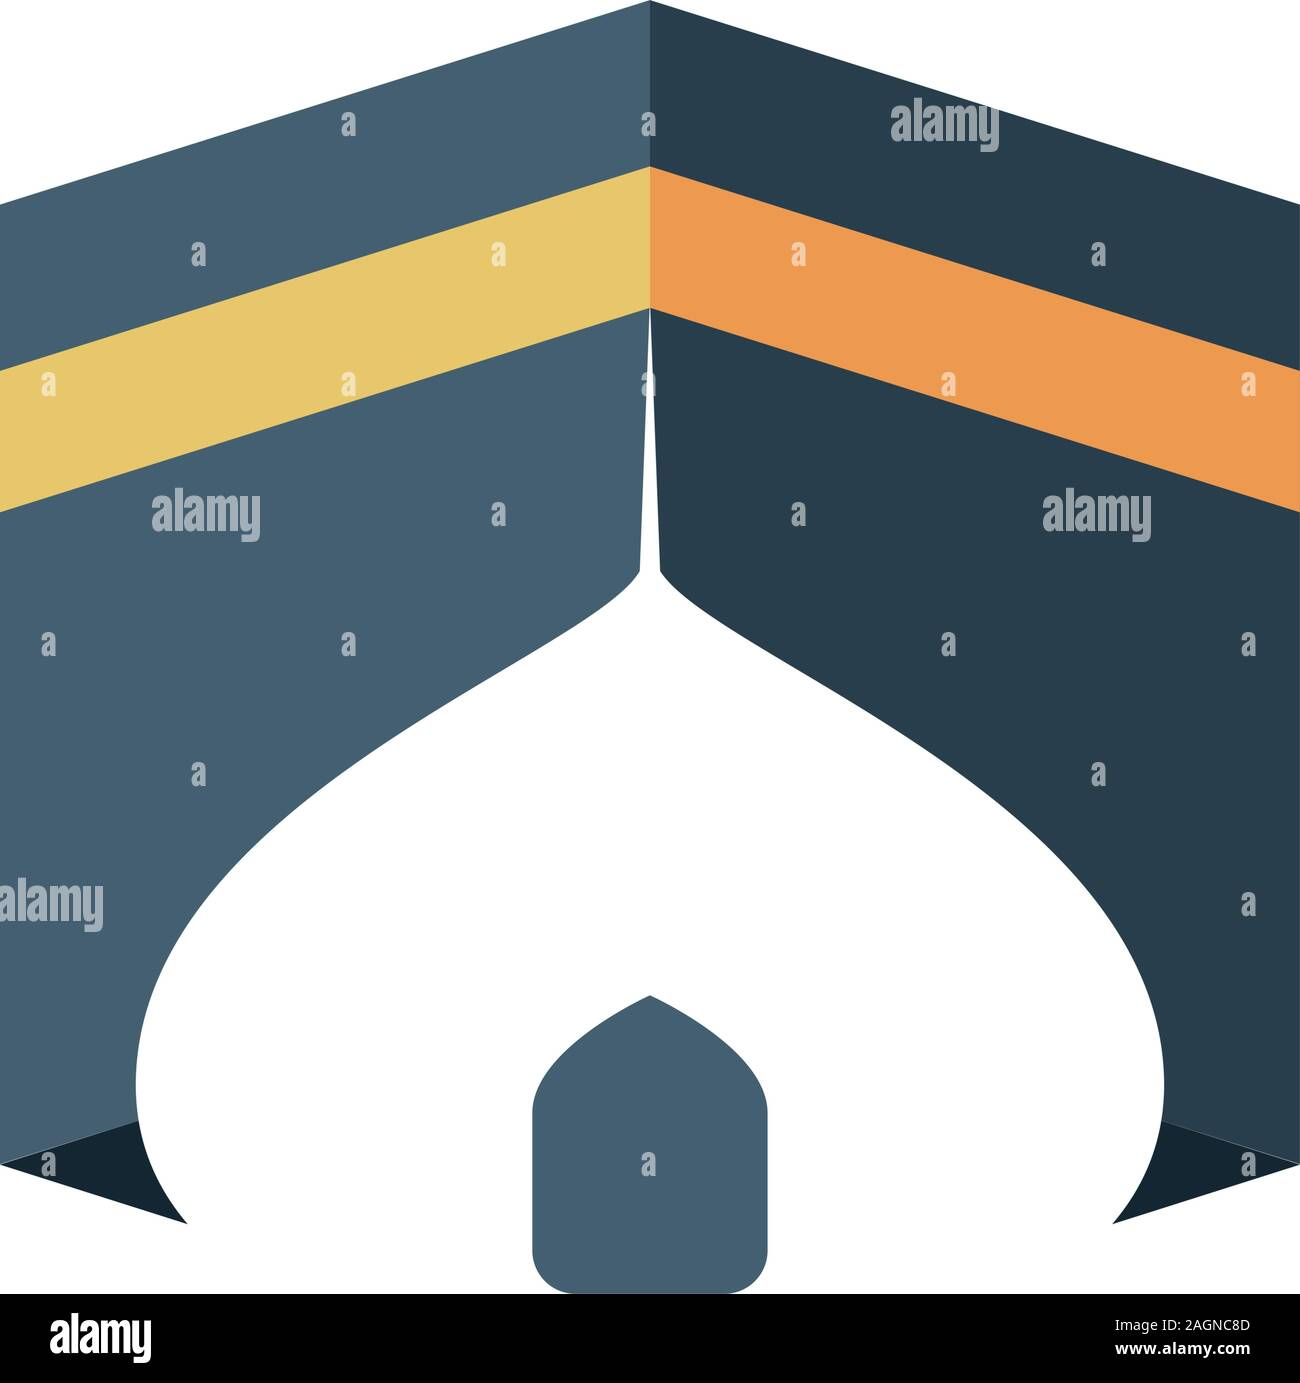 abstract logo of kabah and mosque isolated vector illustration stock vector image art alamy https www alamy com abstract logo of kabah and mosque isolated vector illustration image337302125 html